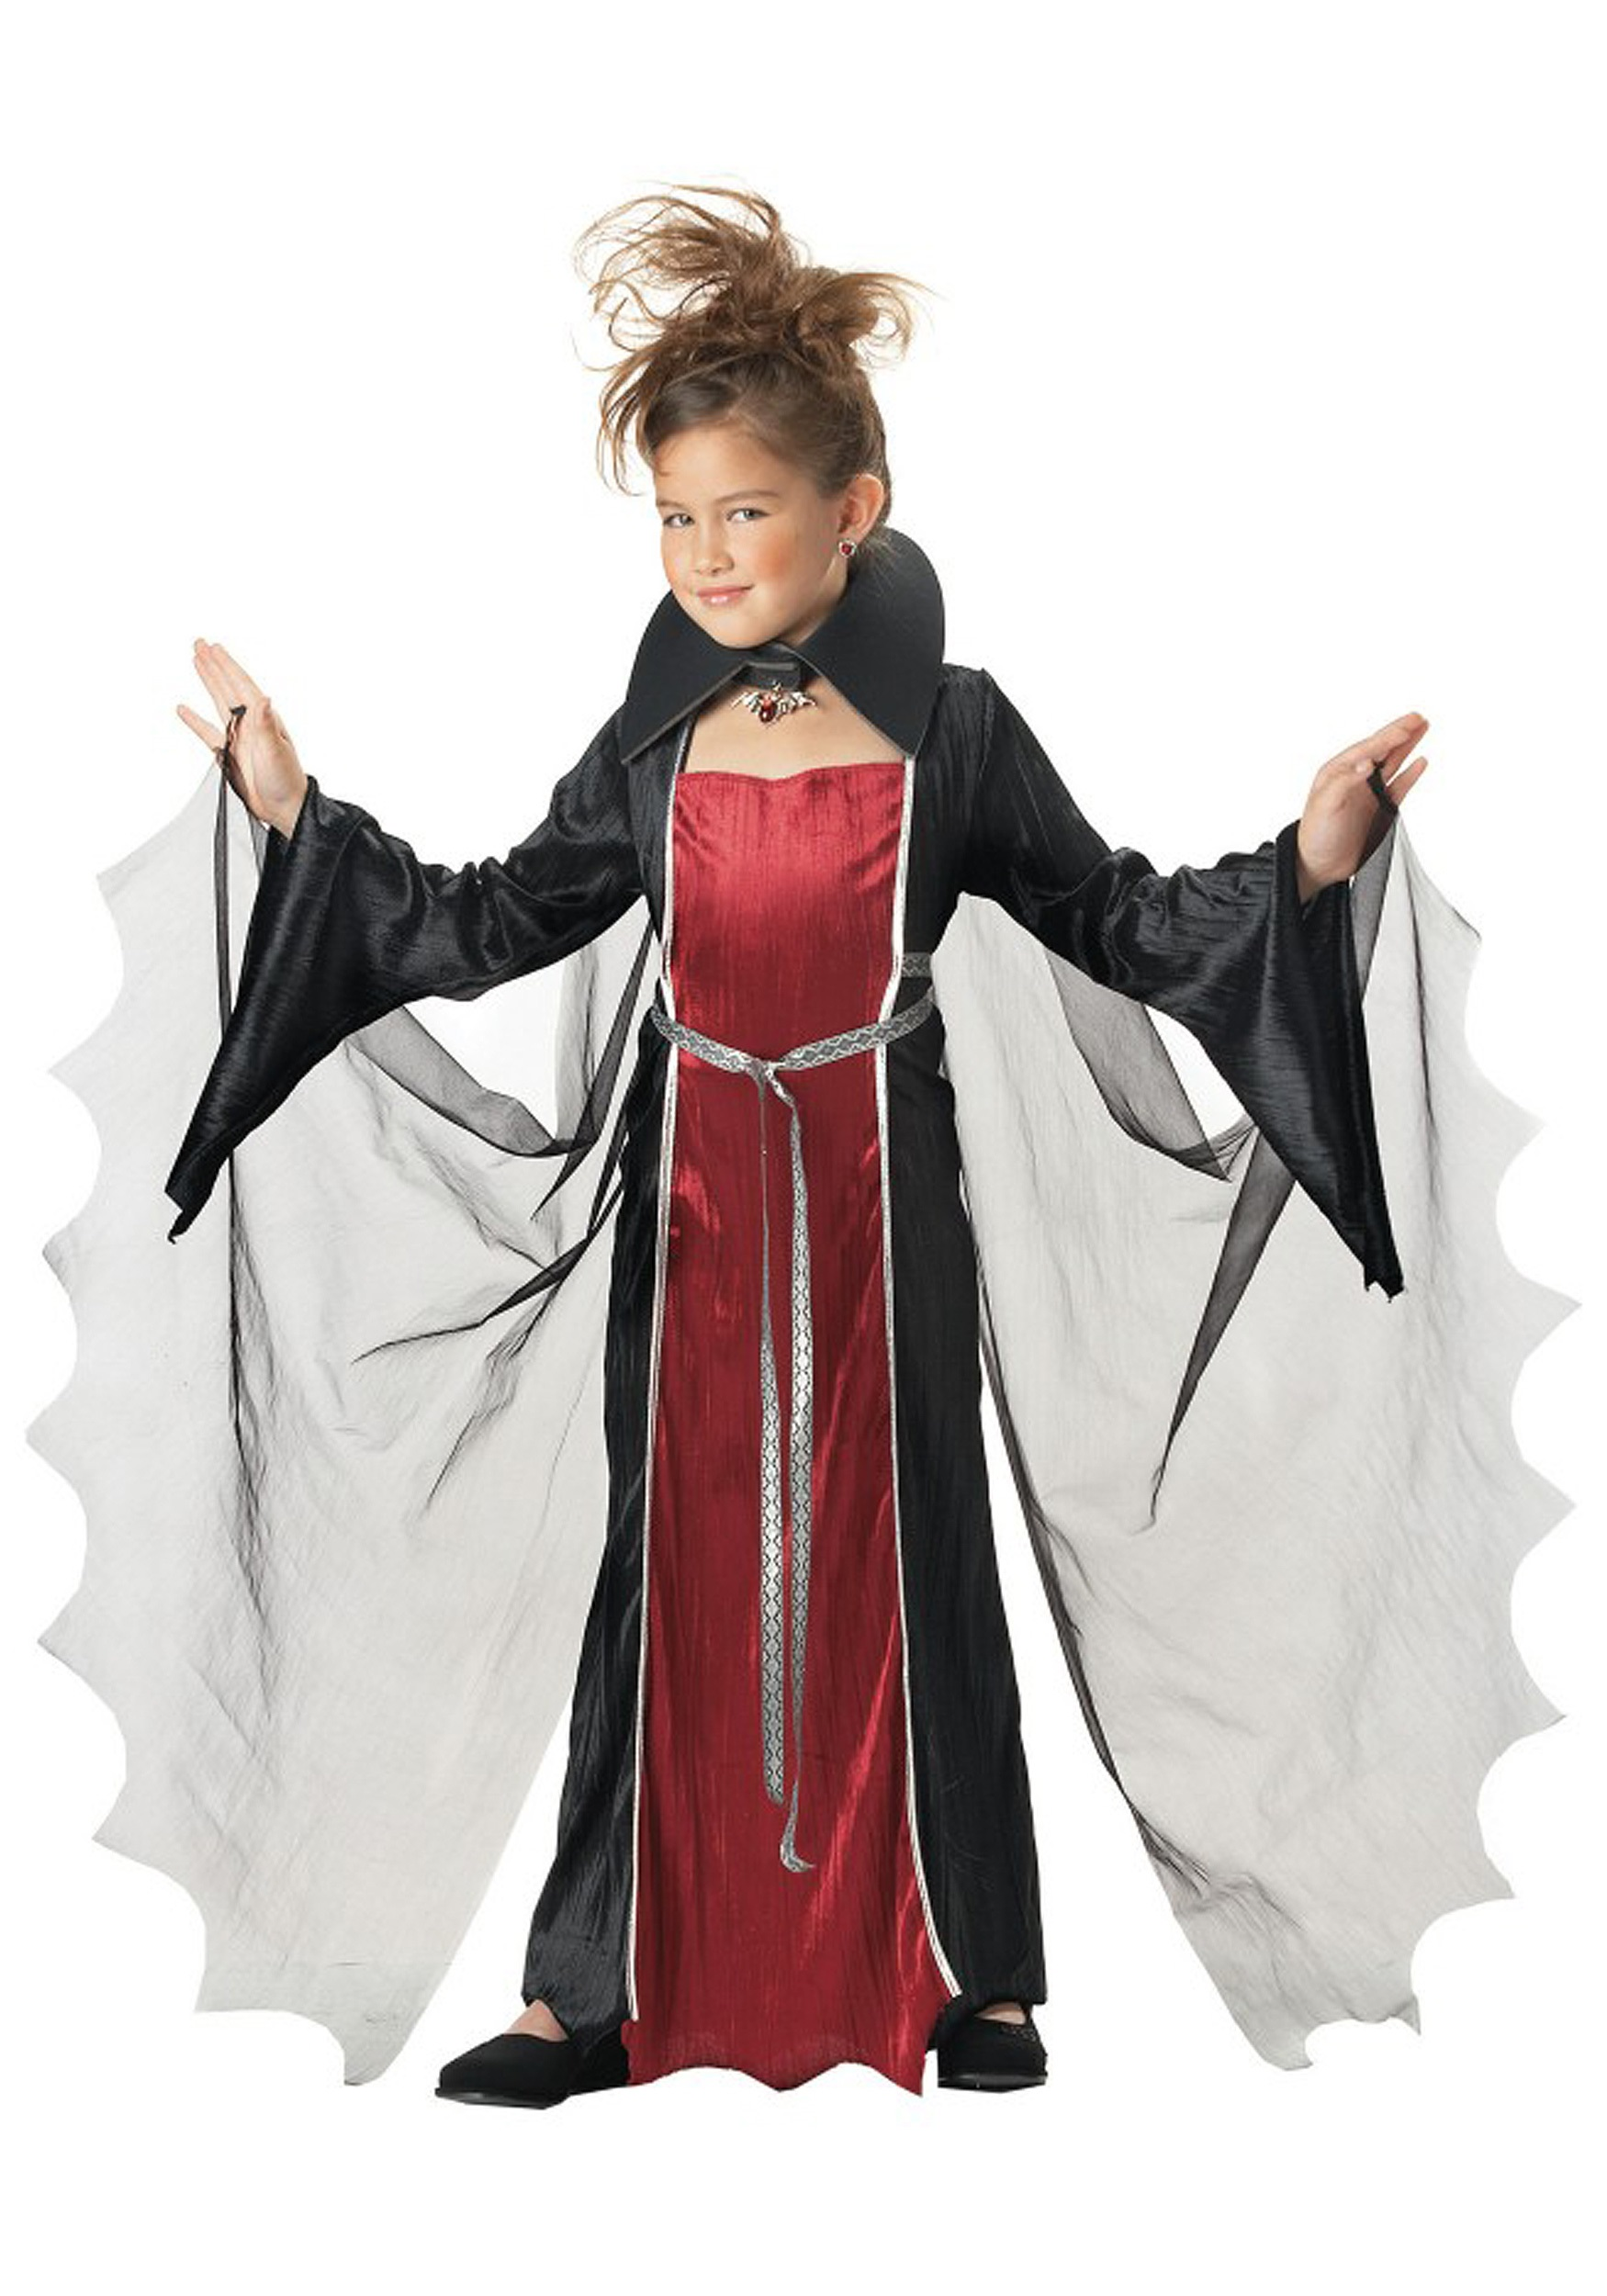 Halloween costume ideas for teenagers for Cool halloween costumes for kids girls